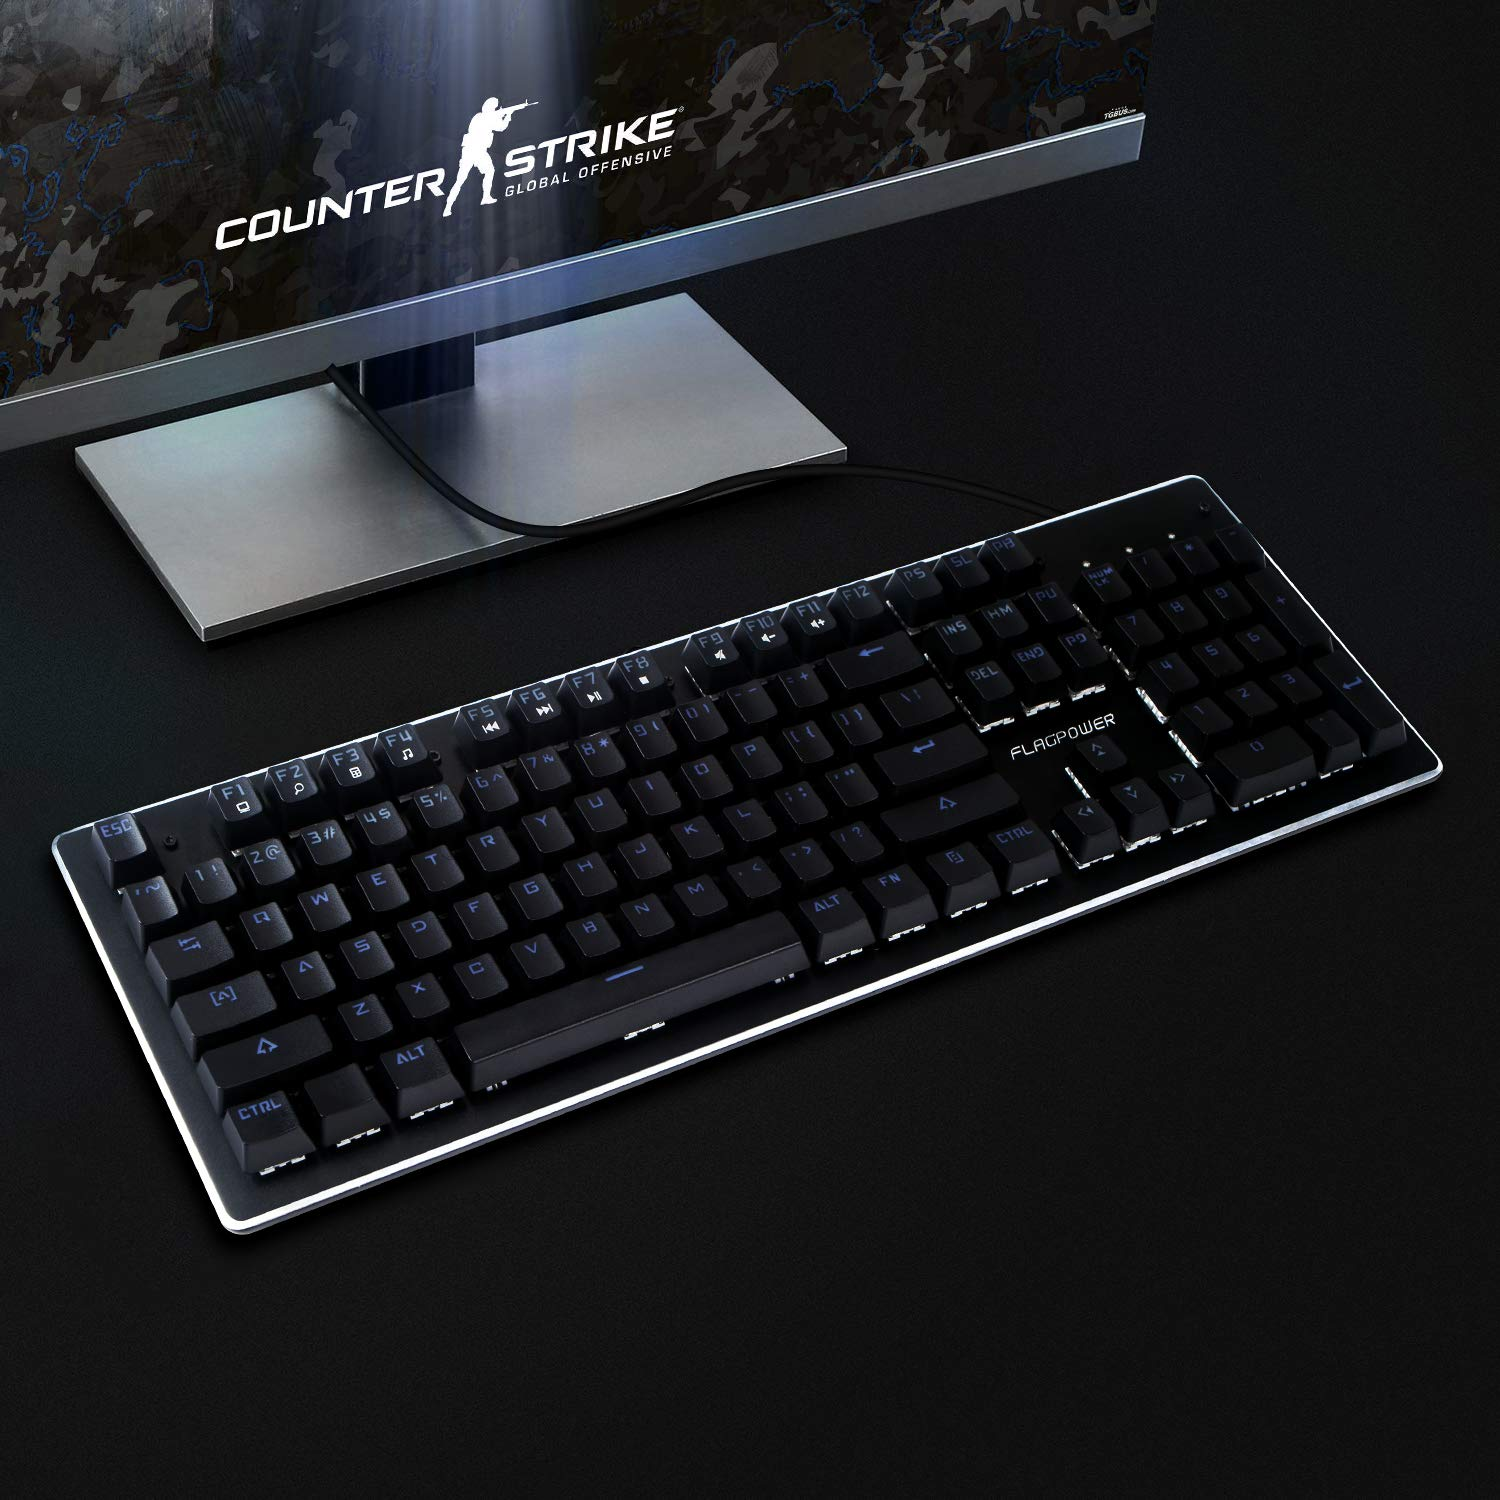 FLAGPOWER Mechanical Gaming Keyboard 10 LED Backlit Modes 104 Keys Anti-Ghosting Mechanical Gaming Keyboard with Blue Switches Aluminum Plate for PC and Mac Gamers-Pro Gamers